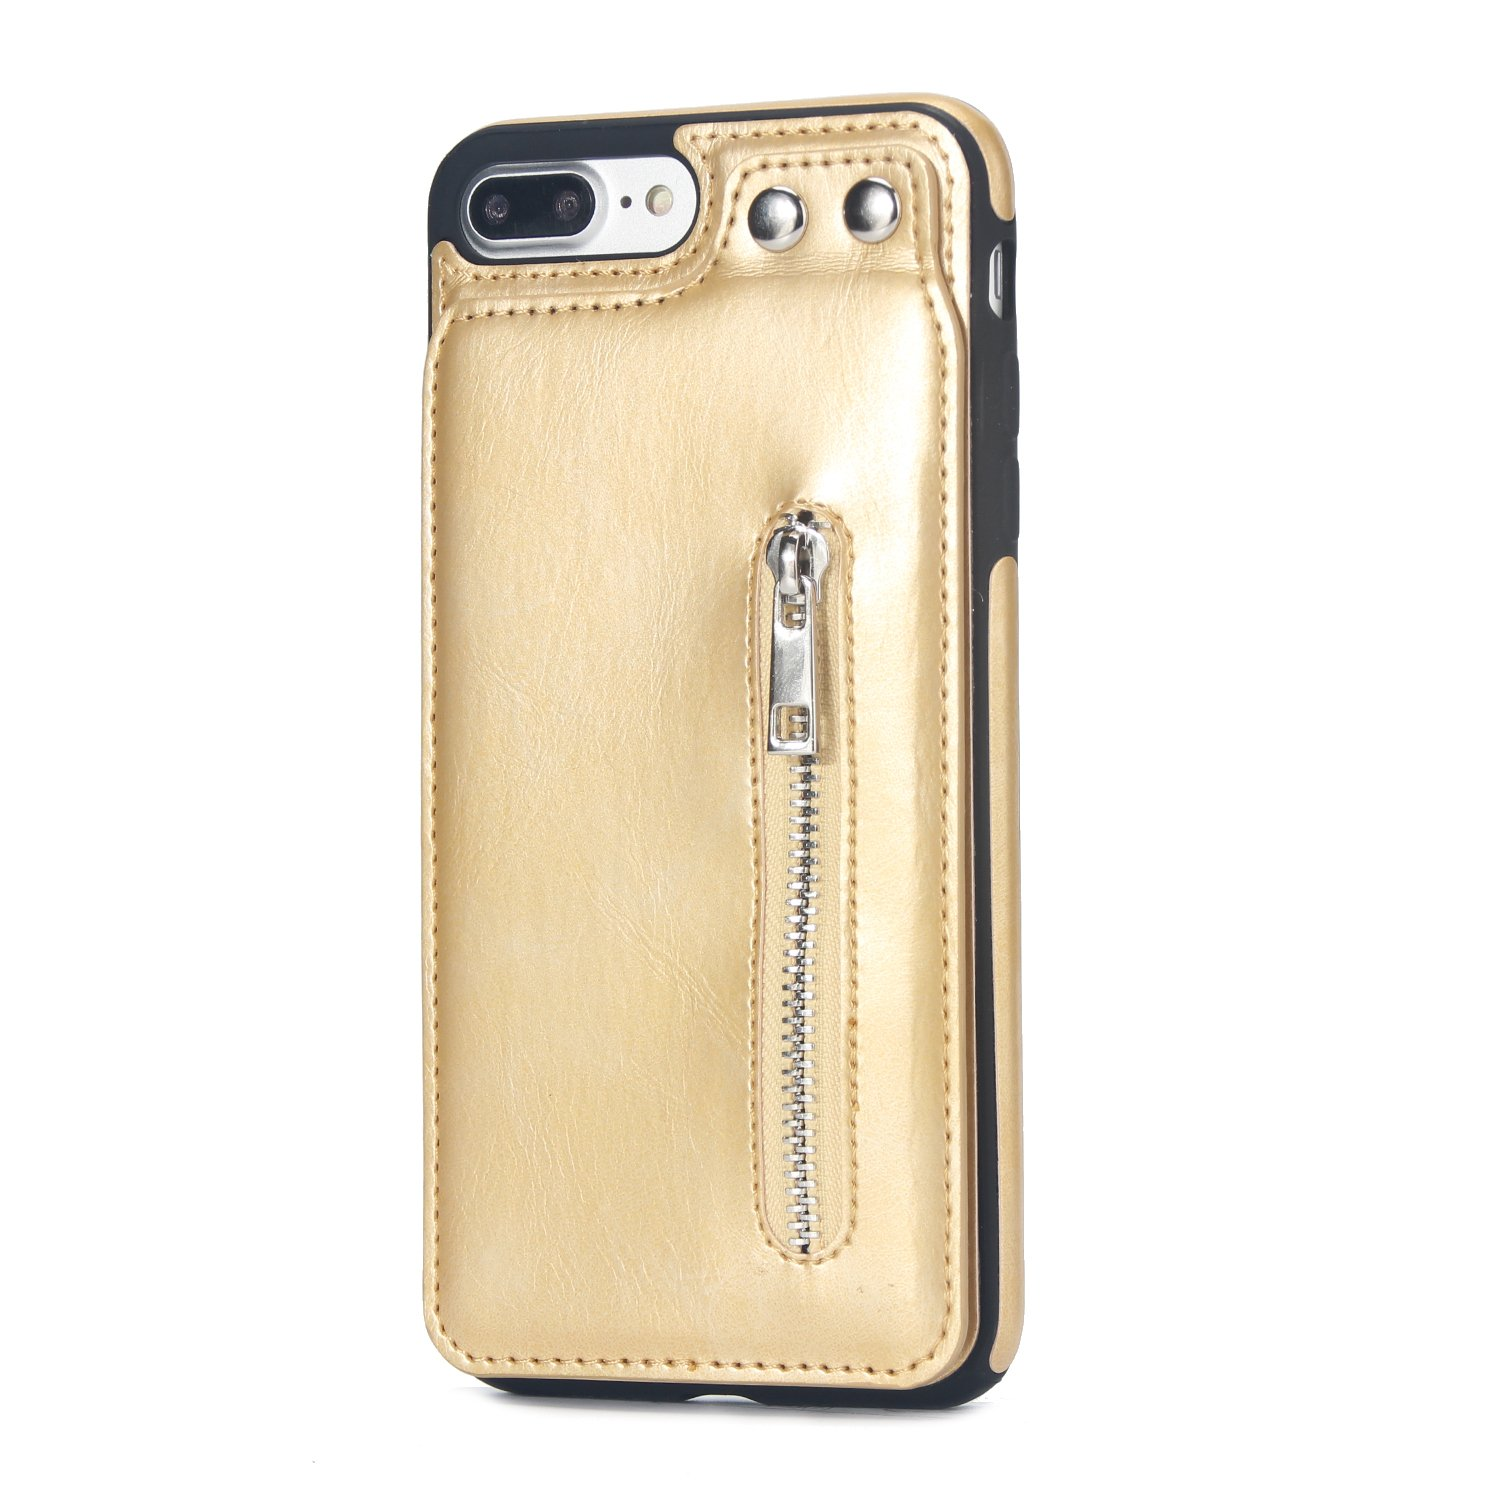 Case for iPhone 7 Plus/iPhone 8 Plus Flip Case Premium PU Leather Wallet Cover with Card Holder Money Pocket Durable Shockproof Protective Cover for iPhone 7/8 Plus,Gold by ikasus